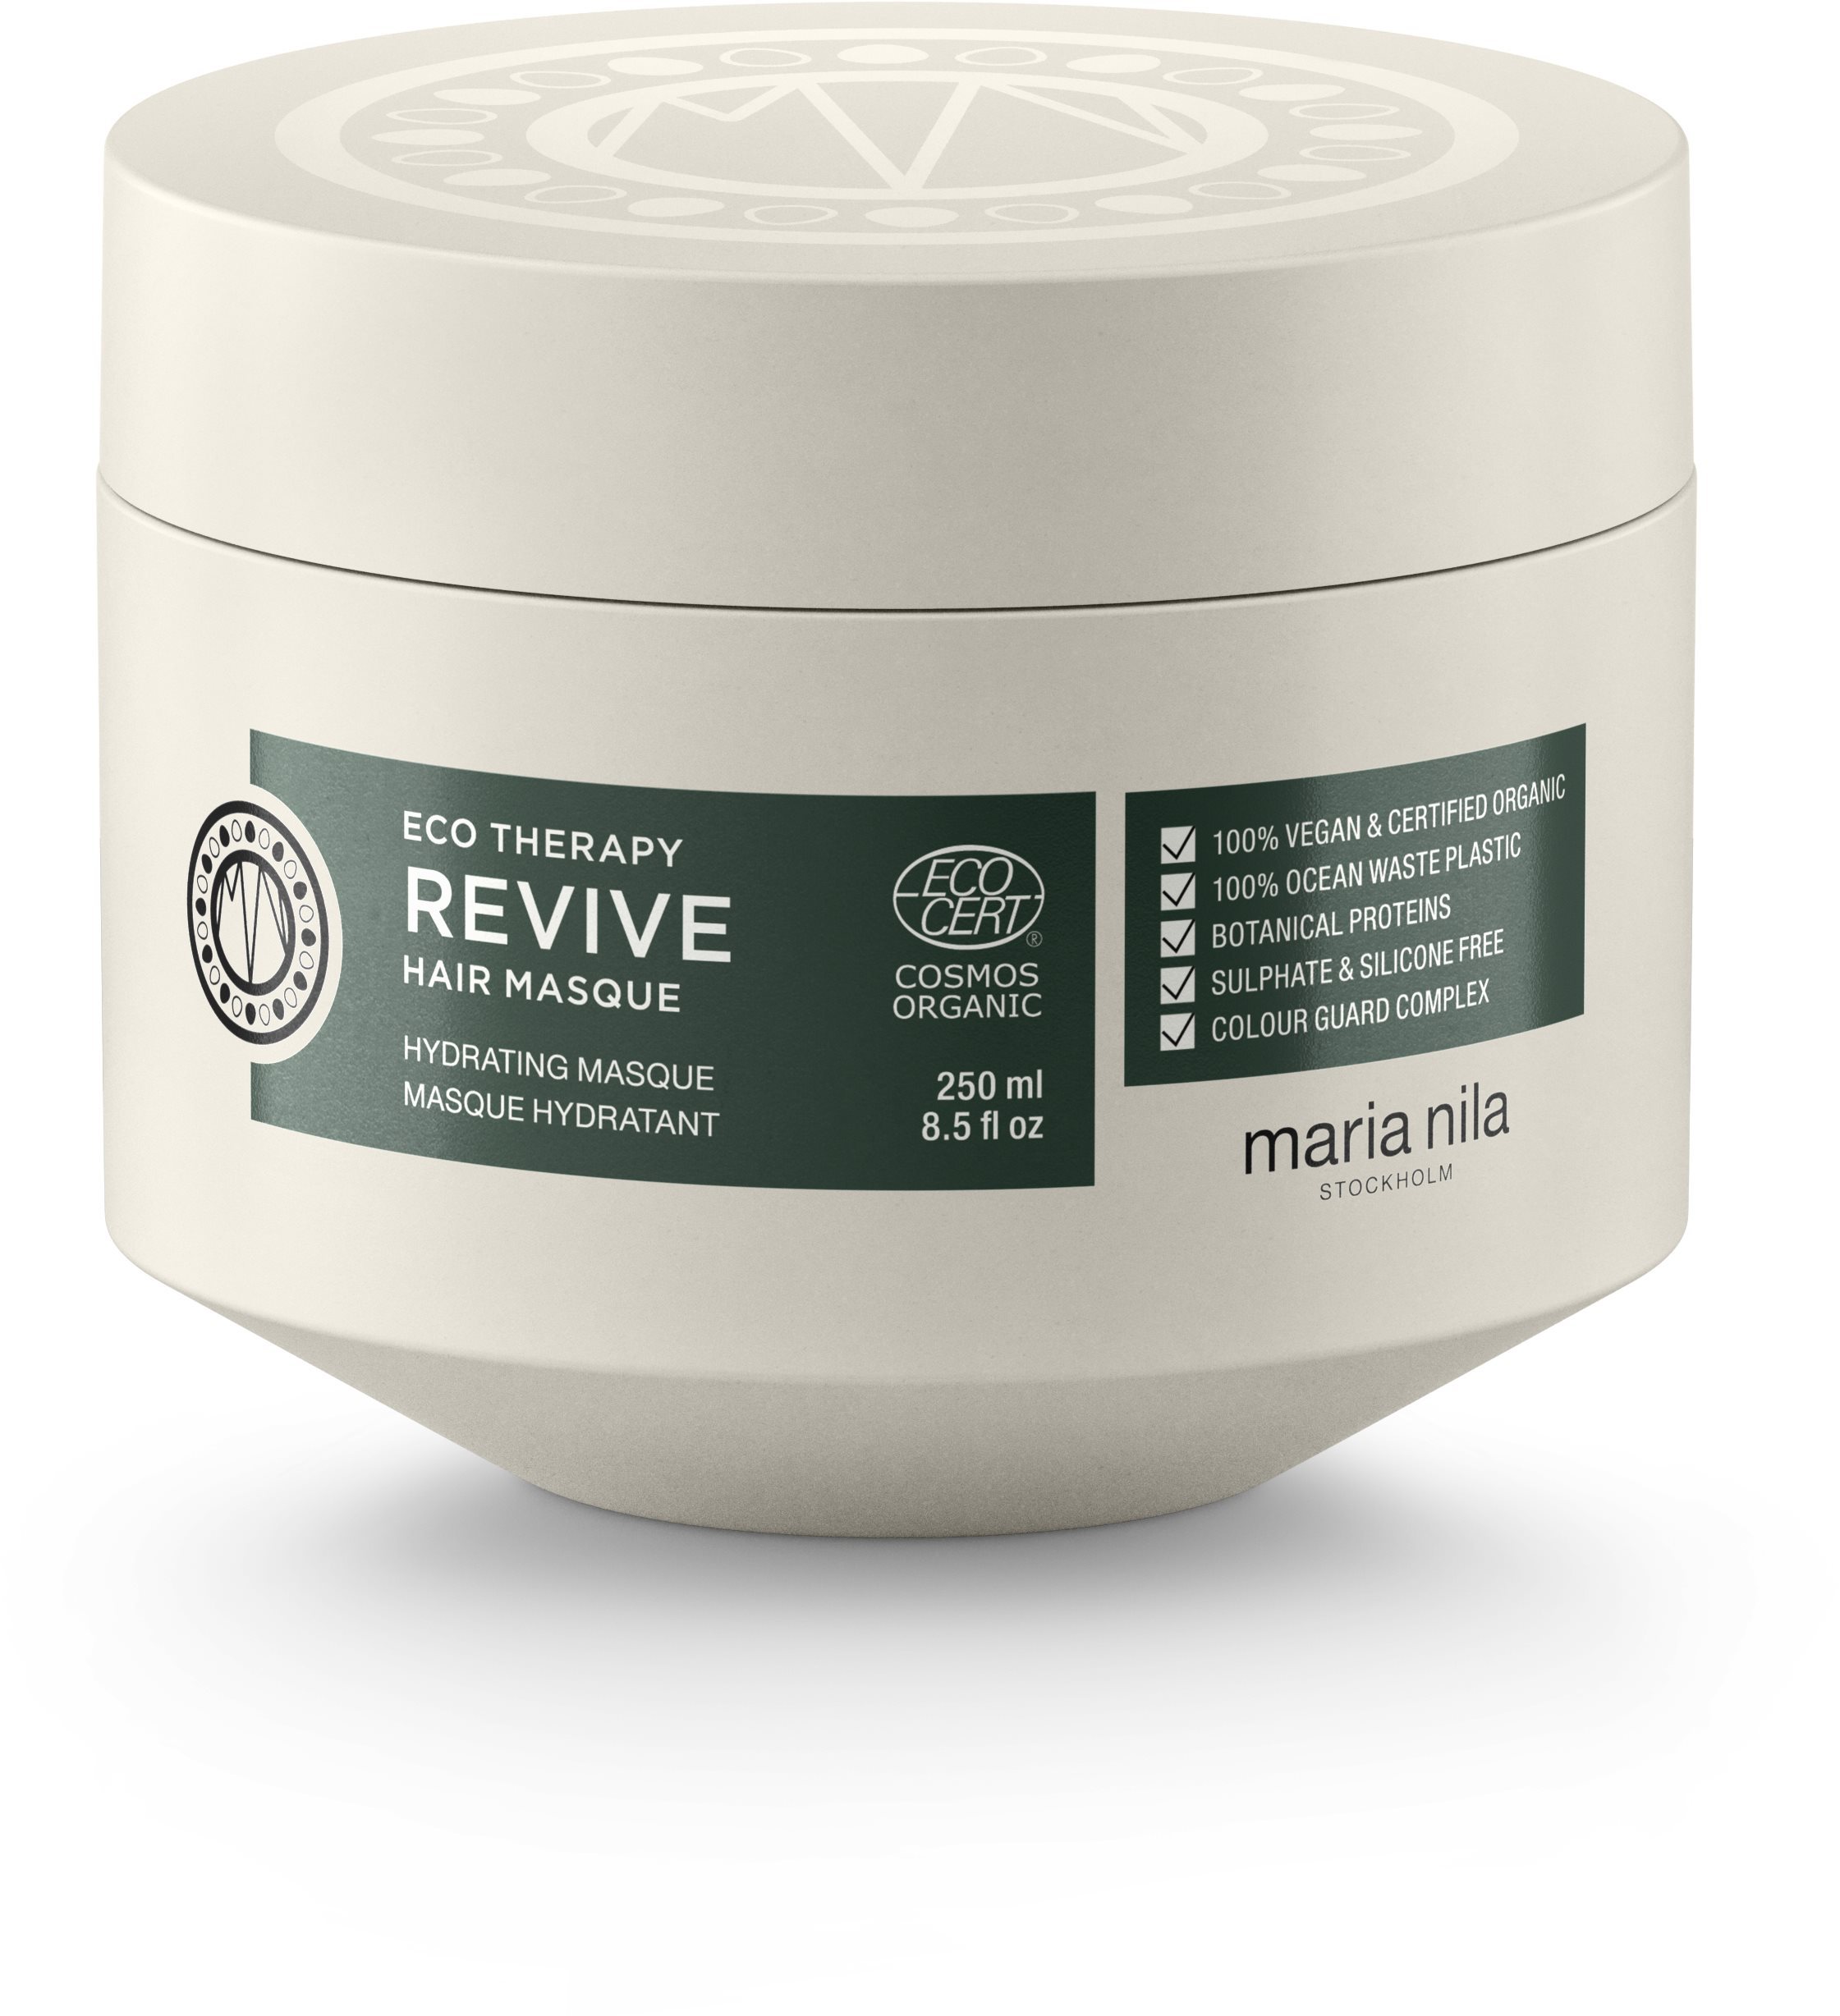 MARIA NILA Eco Therapy Revive Hydrating Mask 250 ml